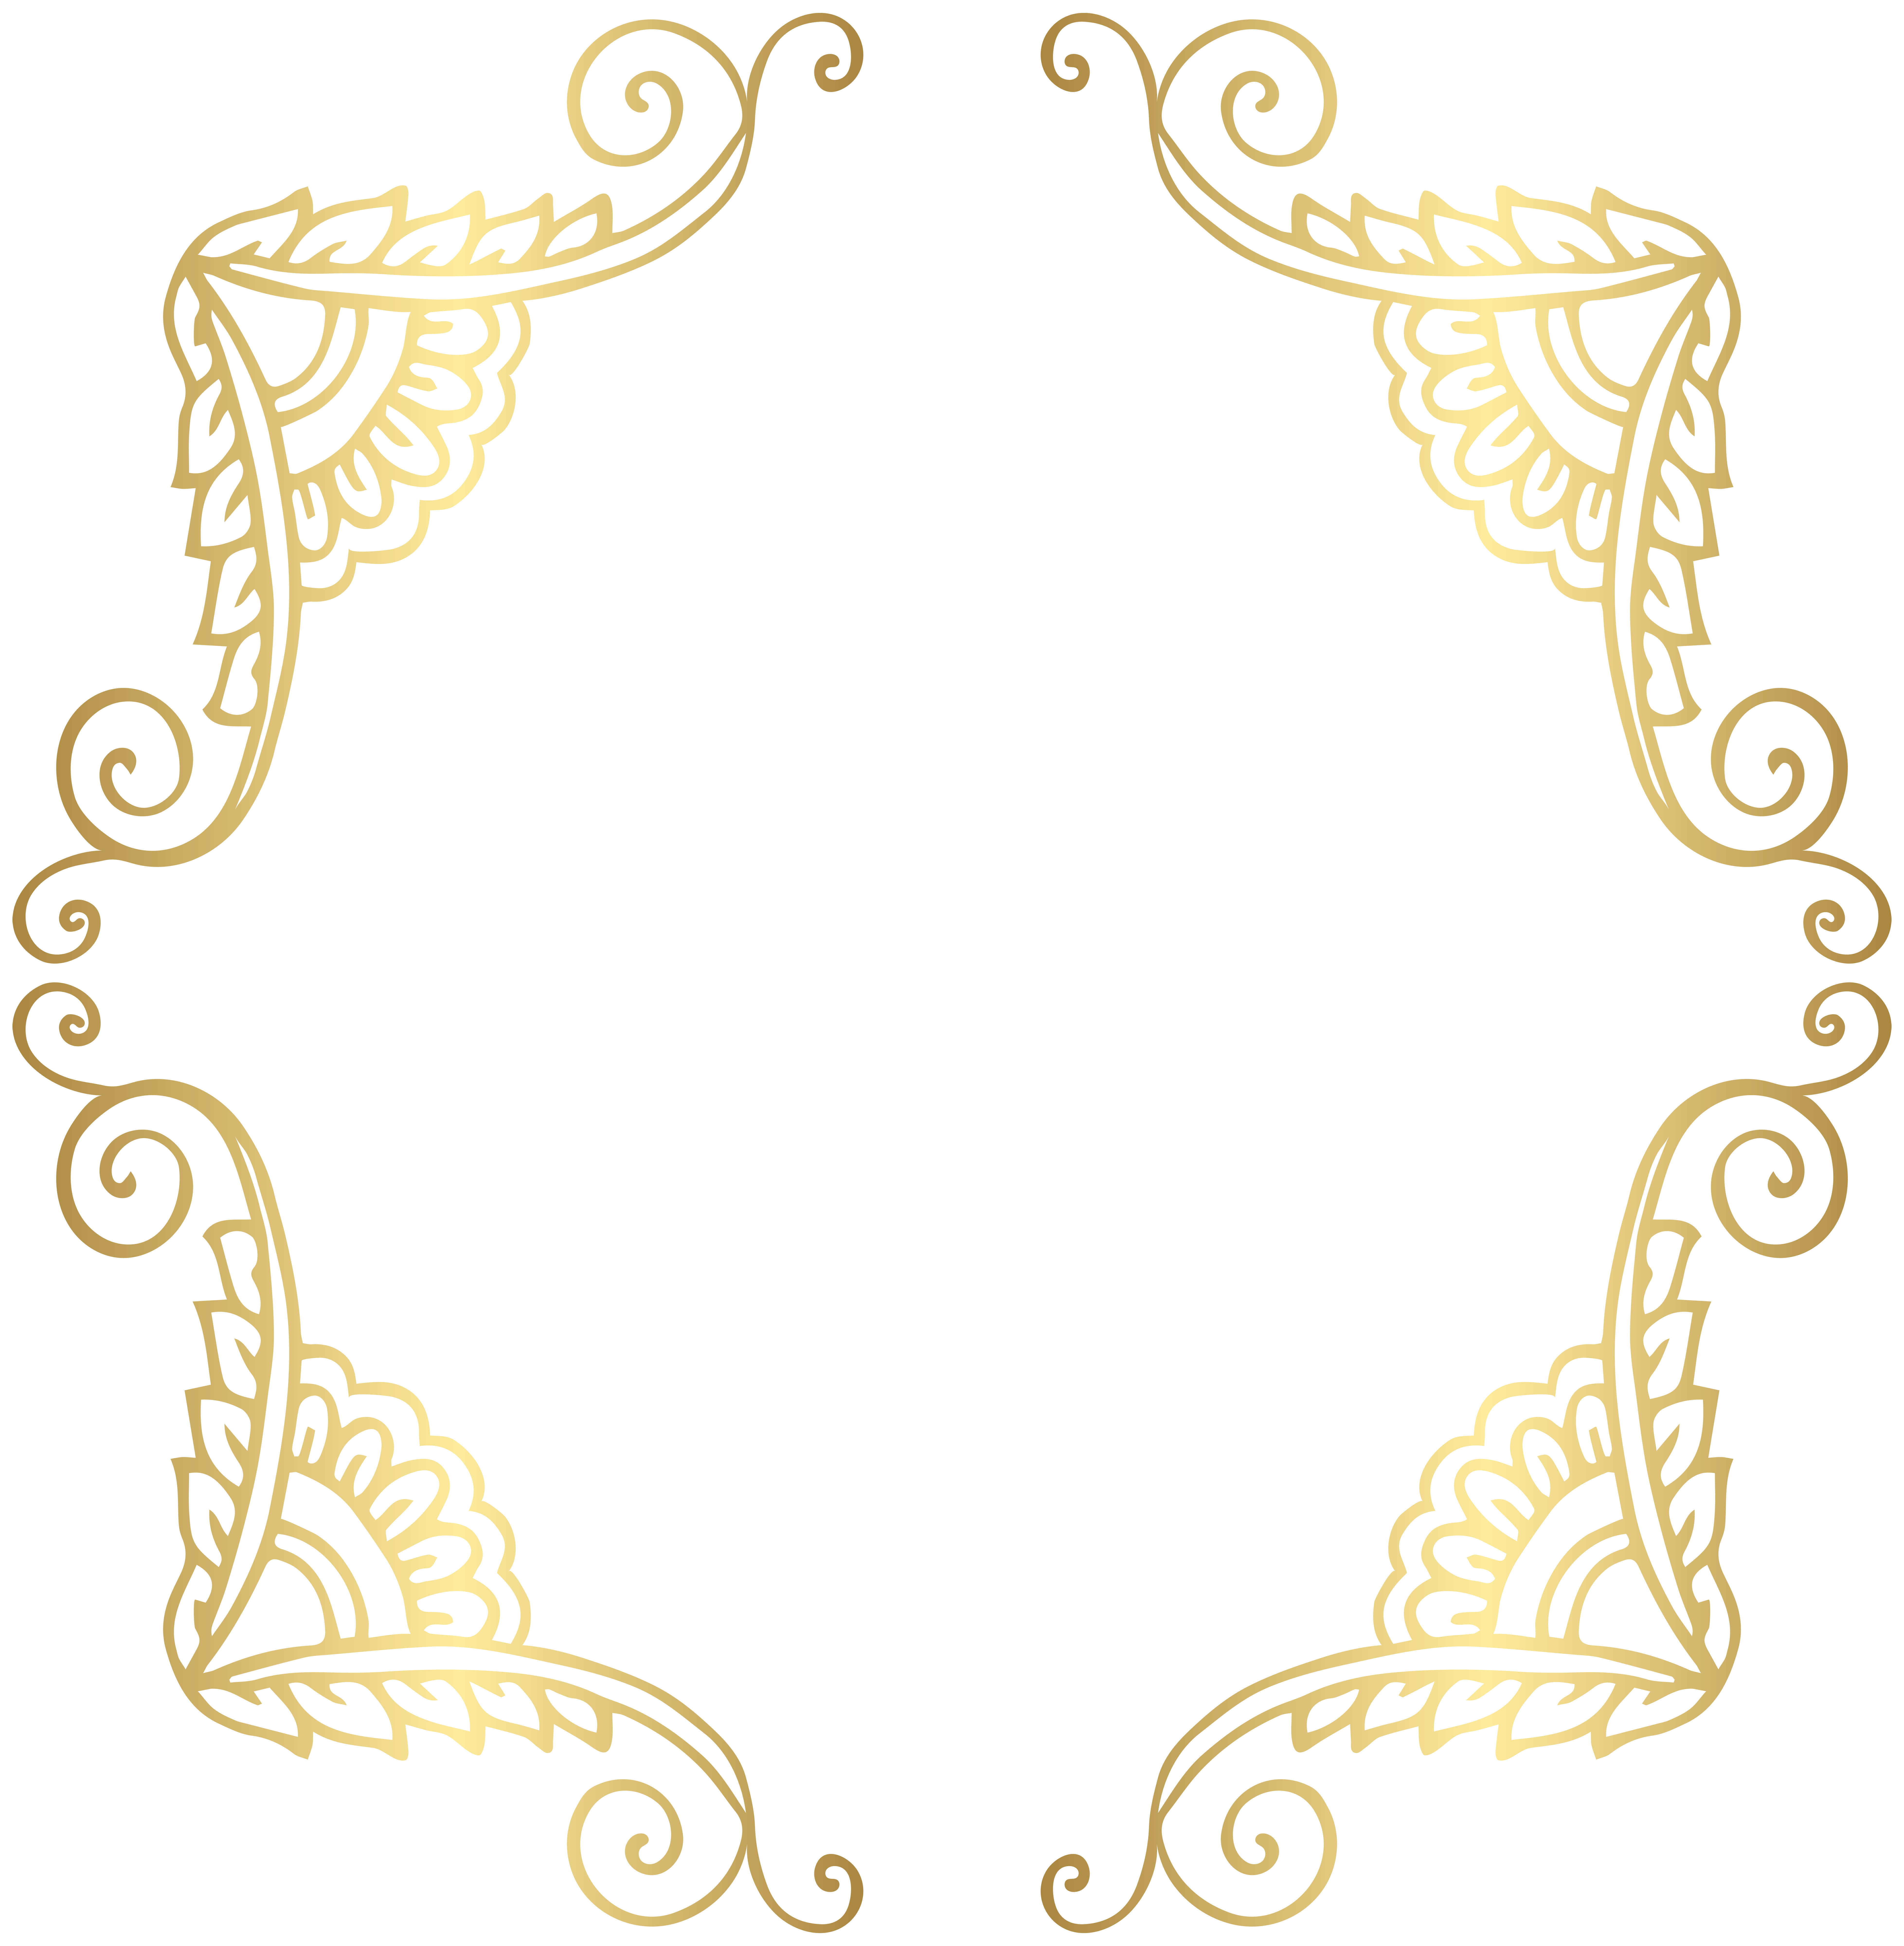 Clipart frame png. Free golden border cliparts